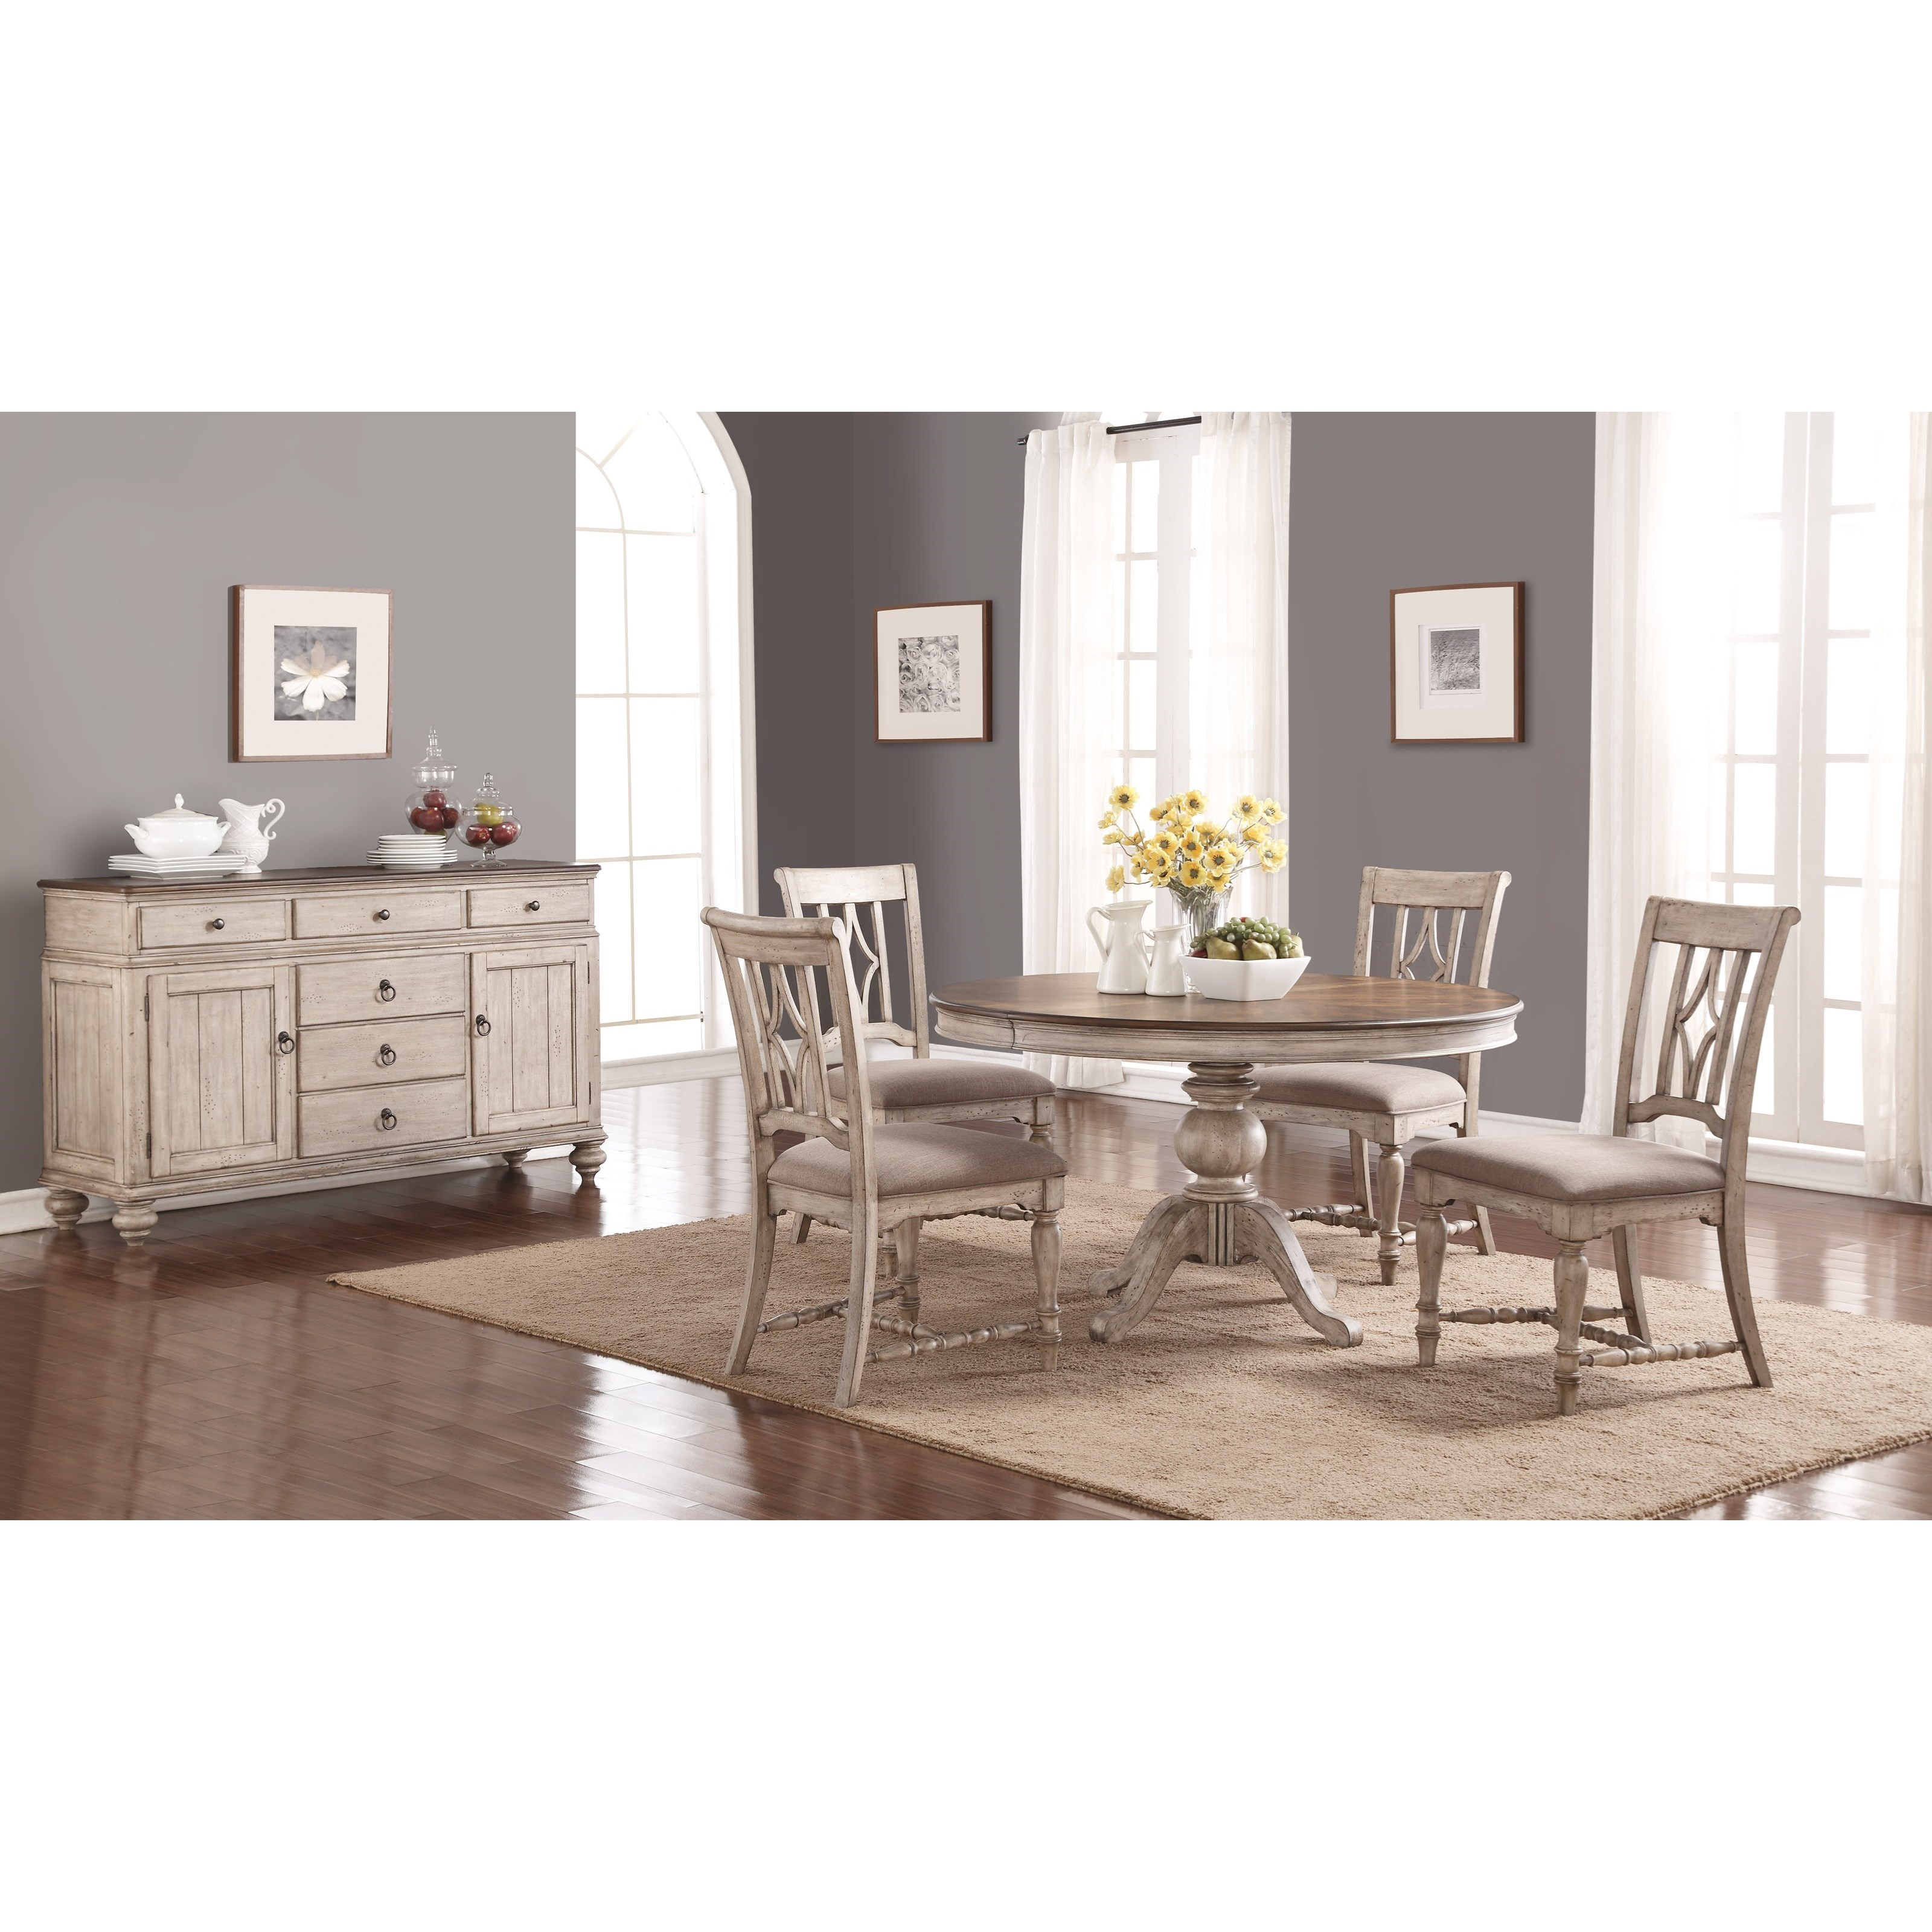 Flexsteel wynwood collection plymouth cottage dining room for House to home plymouth furniture